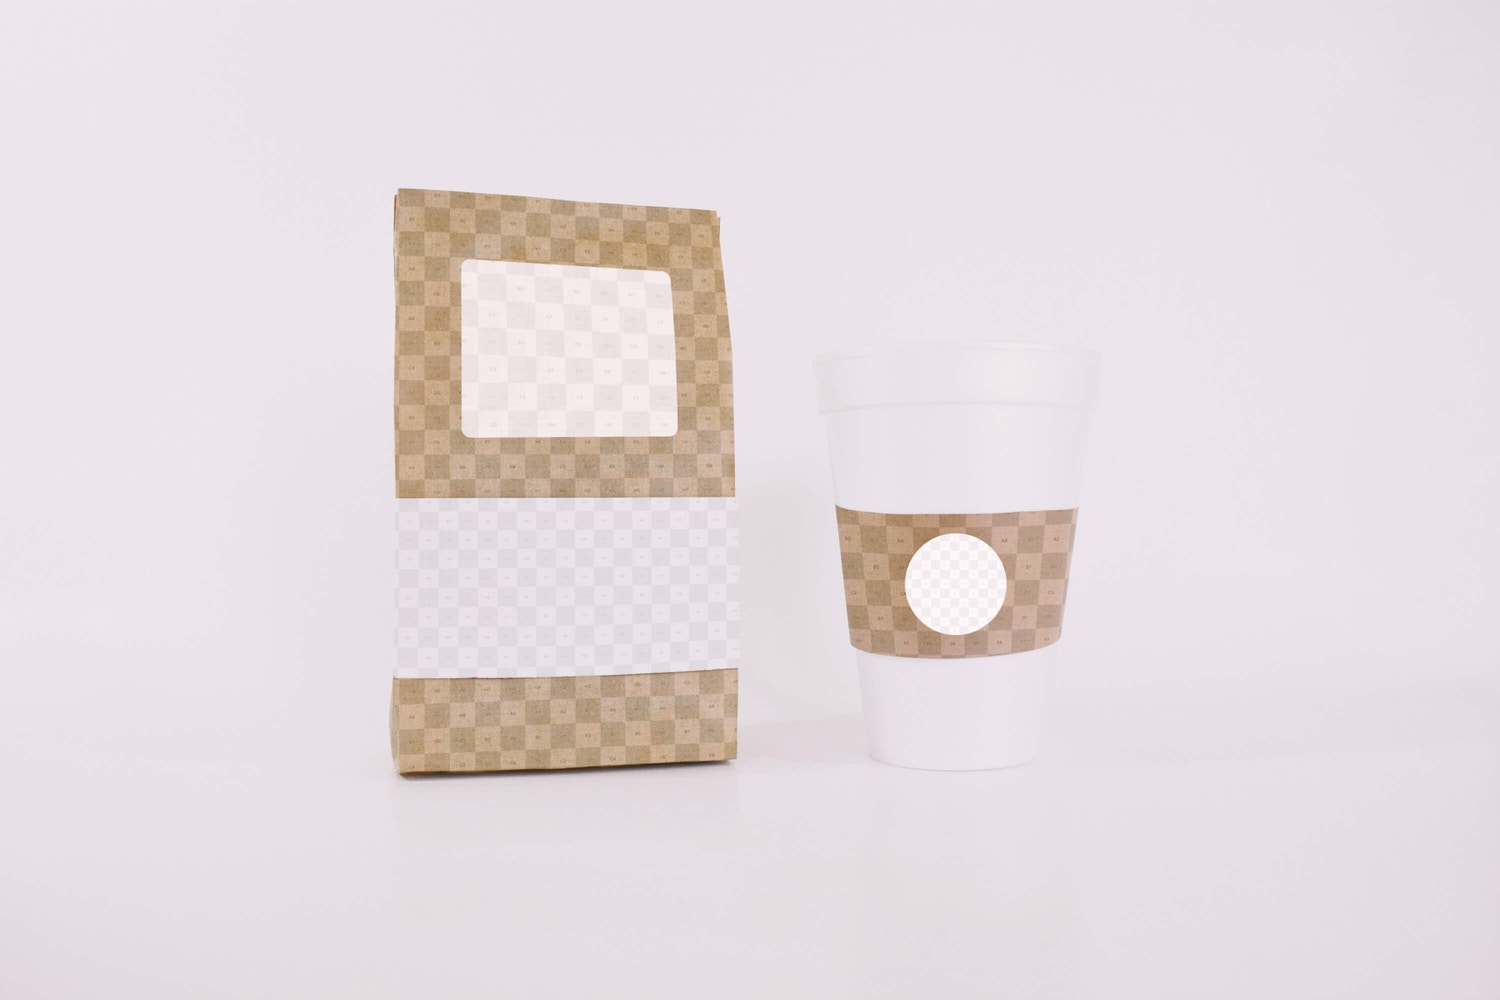 Coffee Bag and Cup Mockup (2) por Eduardo Mejia en Original Mockups